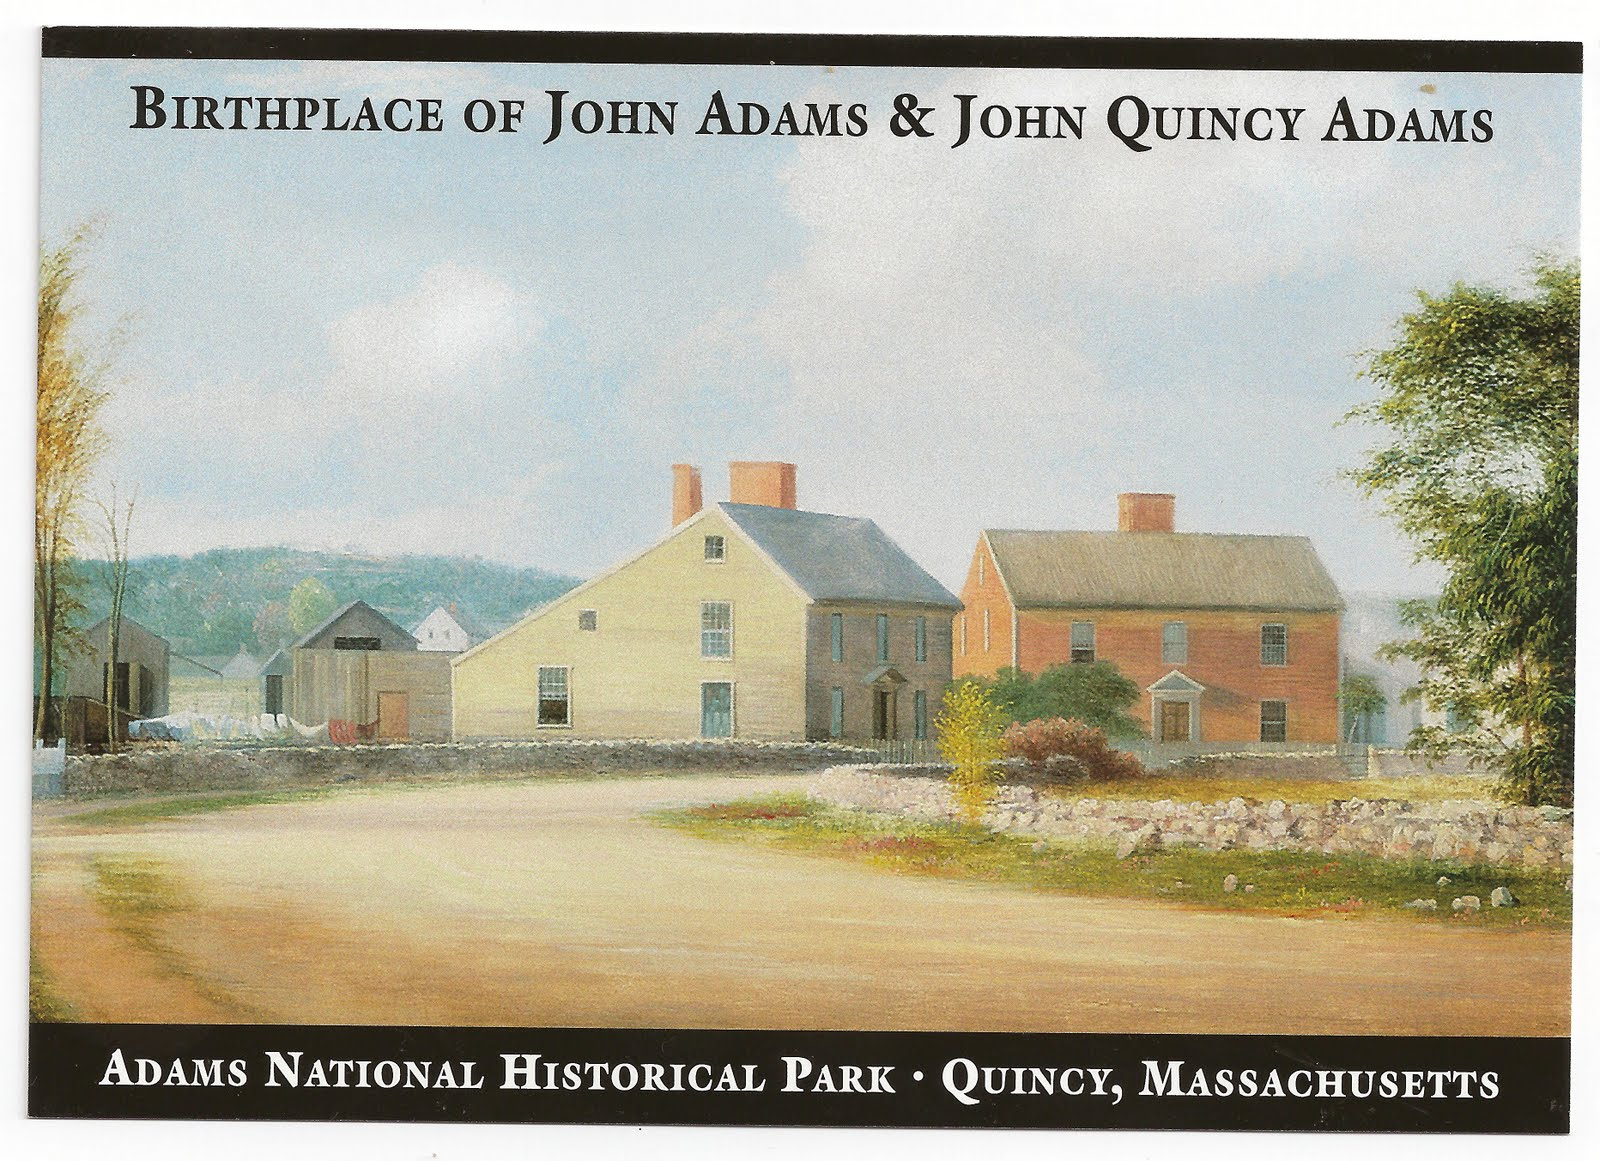 an introduction to the life of john quincy adams the sixth president of the united states Browse and read life of john quincy adams sixth president of the united states life of john quincy adams sixth president of the united states feel lonely.